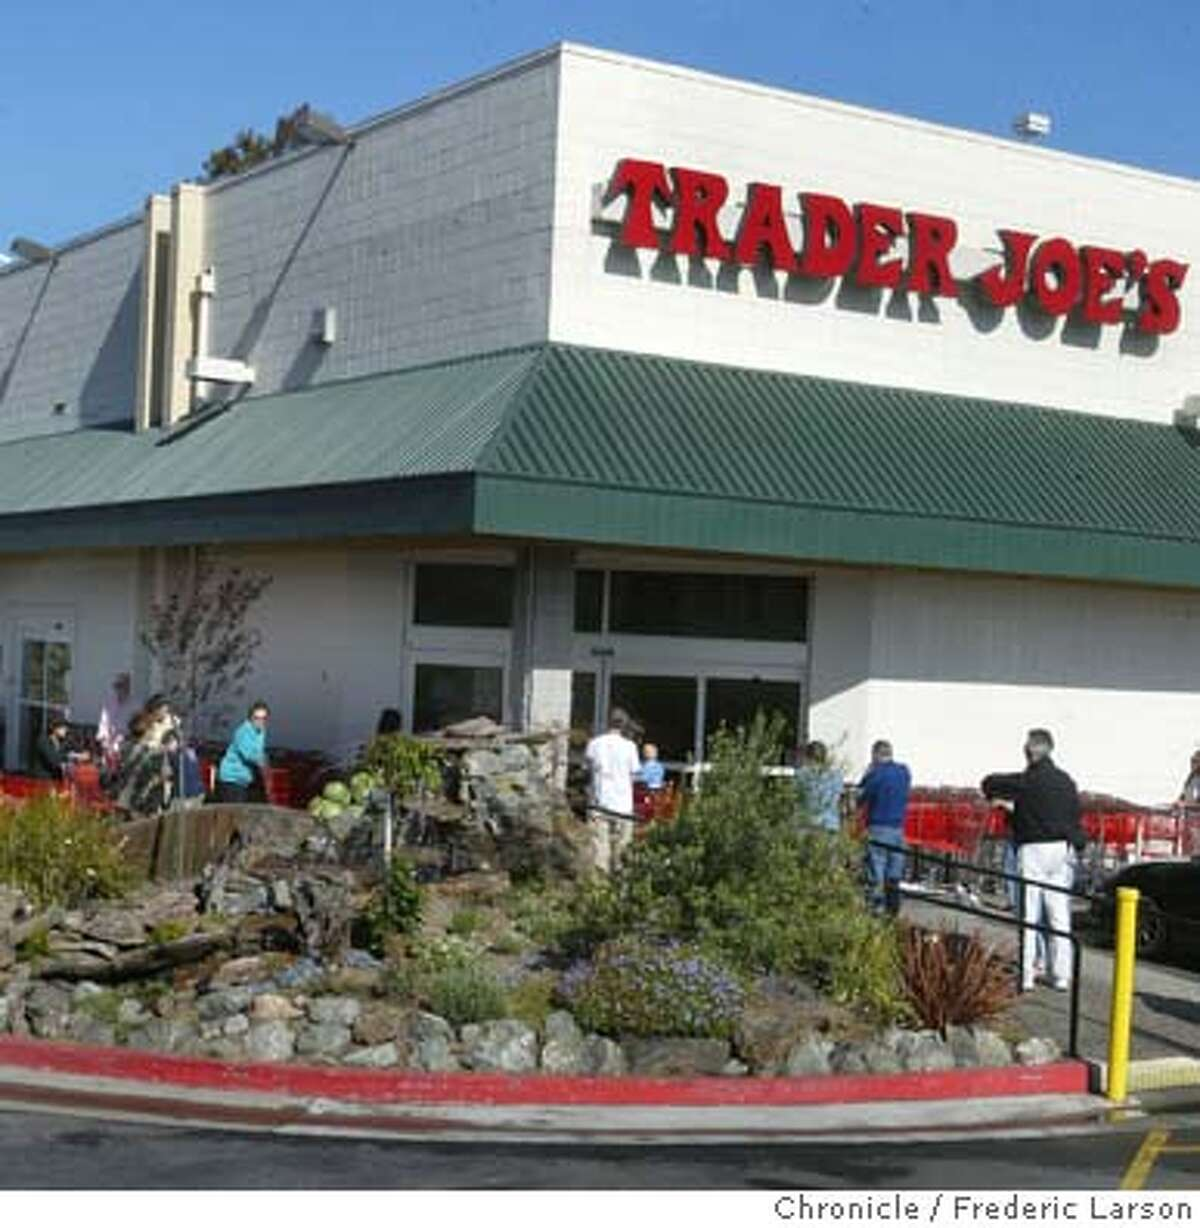 ; Trader Joe's is considering a new location in the Castro, on 15th Street and Market. The reaction so far is mixed. Some like the idea of an alternative to Safeway and Cala, while others worry about traffic back-ups similar to the Trader Joe's on Masonic and Geary (in the photo). 6/11/04 San Francisco Chronicle Frederic Larson